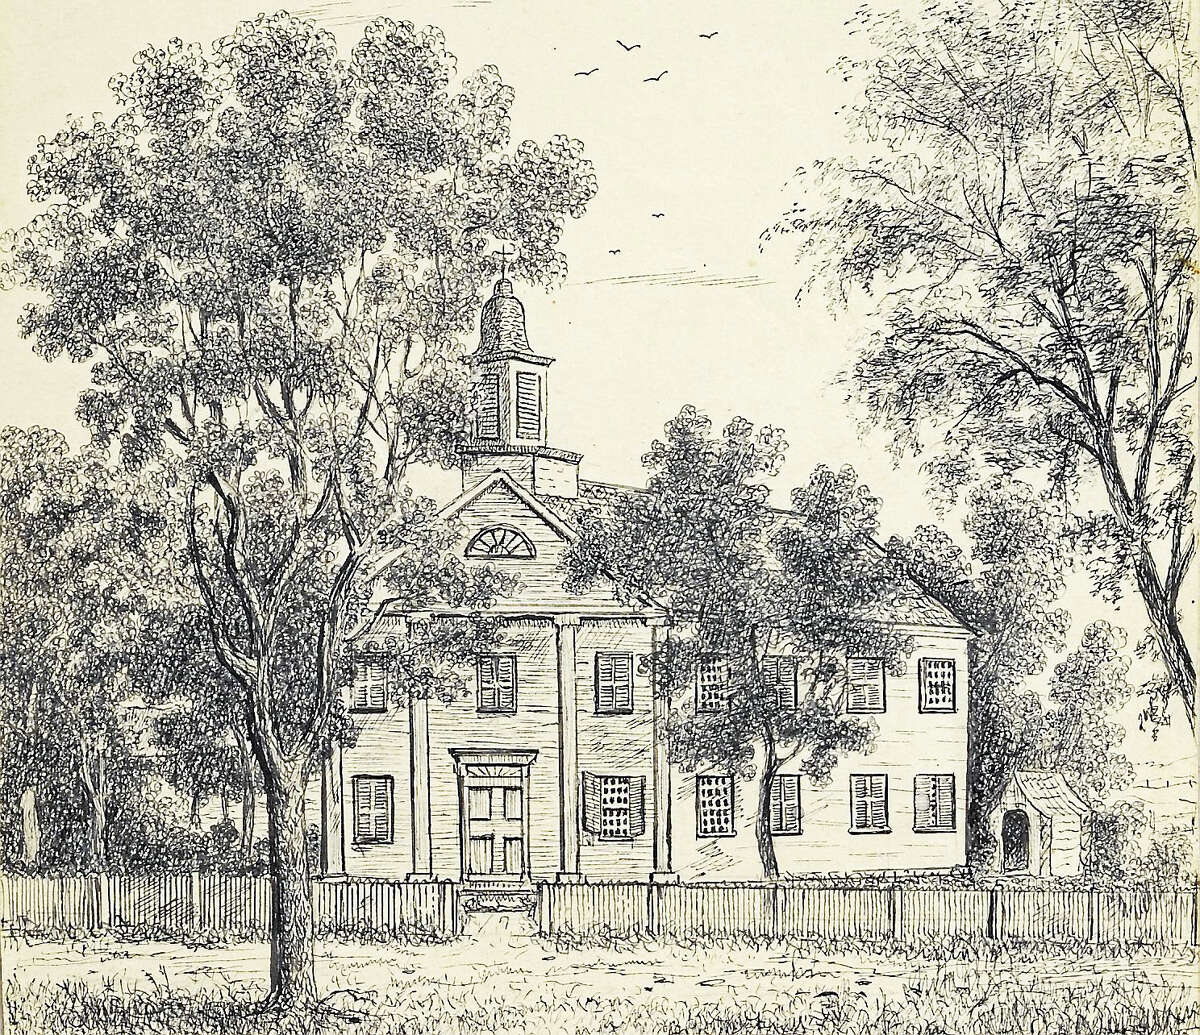 Contributed photoThe Litchfield Female Academy building, a sketch, part of the Litchfield Historical Society collection and included in its new exhibition opening in April.